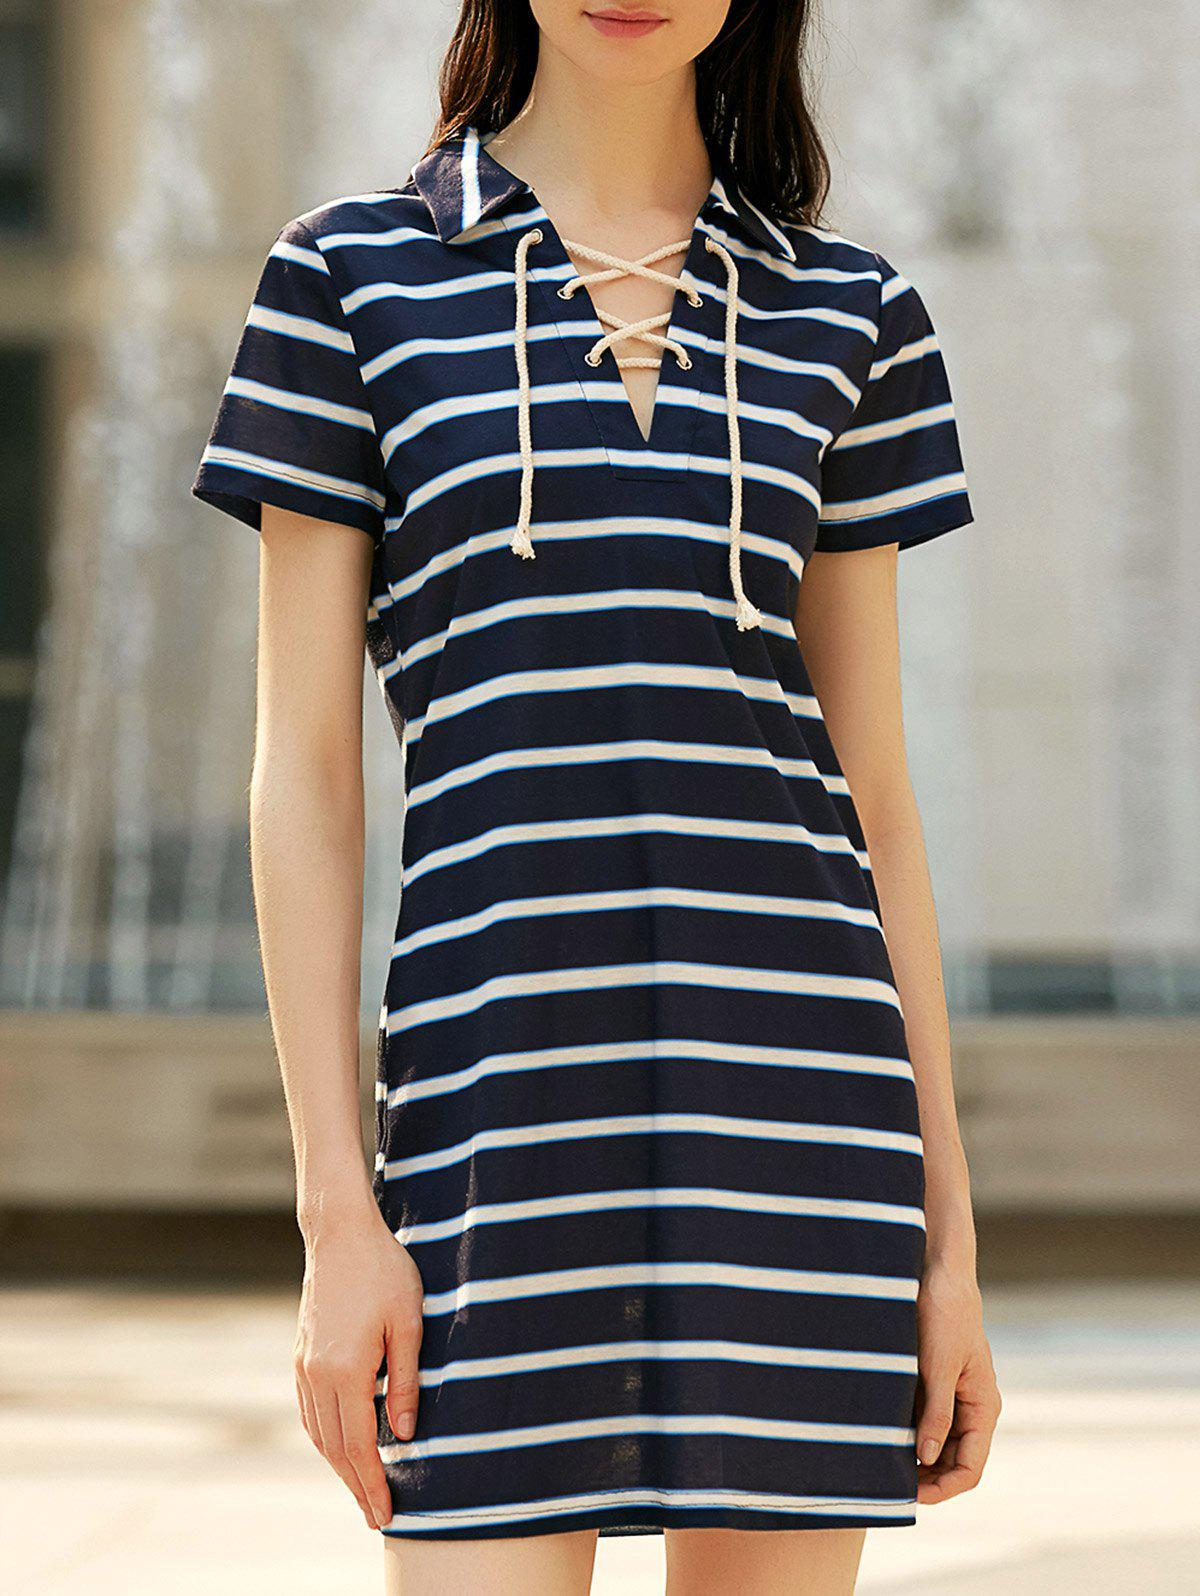 Preppy Style Striped Lace-Up Short Sleeve Dress For WomenWomen<br><br><br>Size: M<br>Color: STRIPE